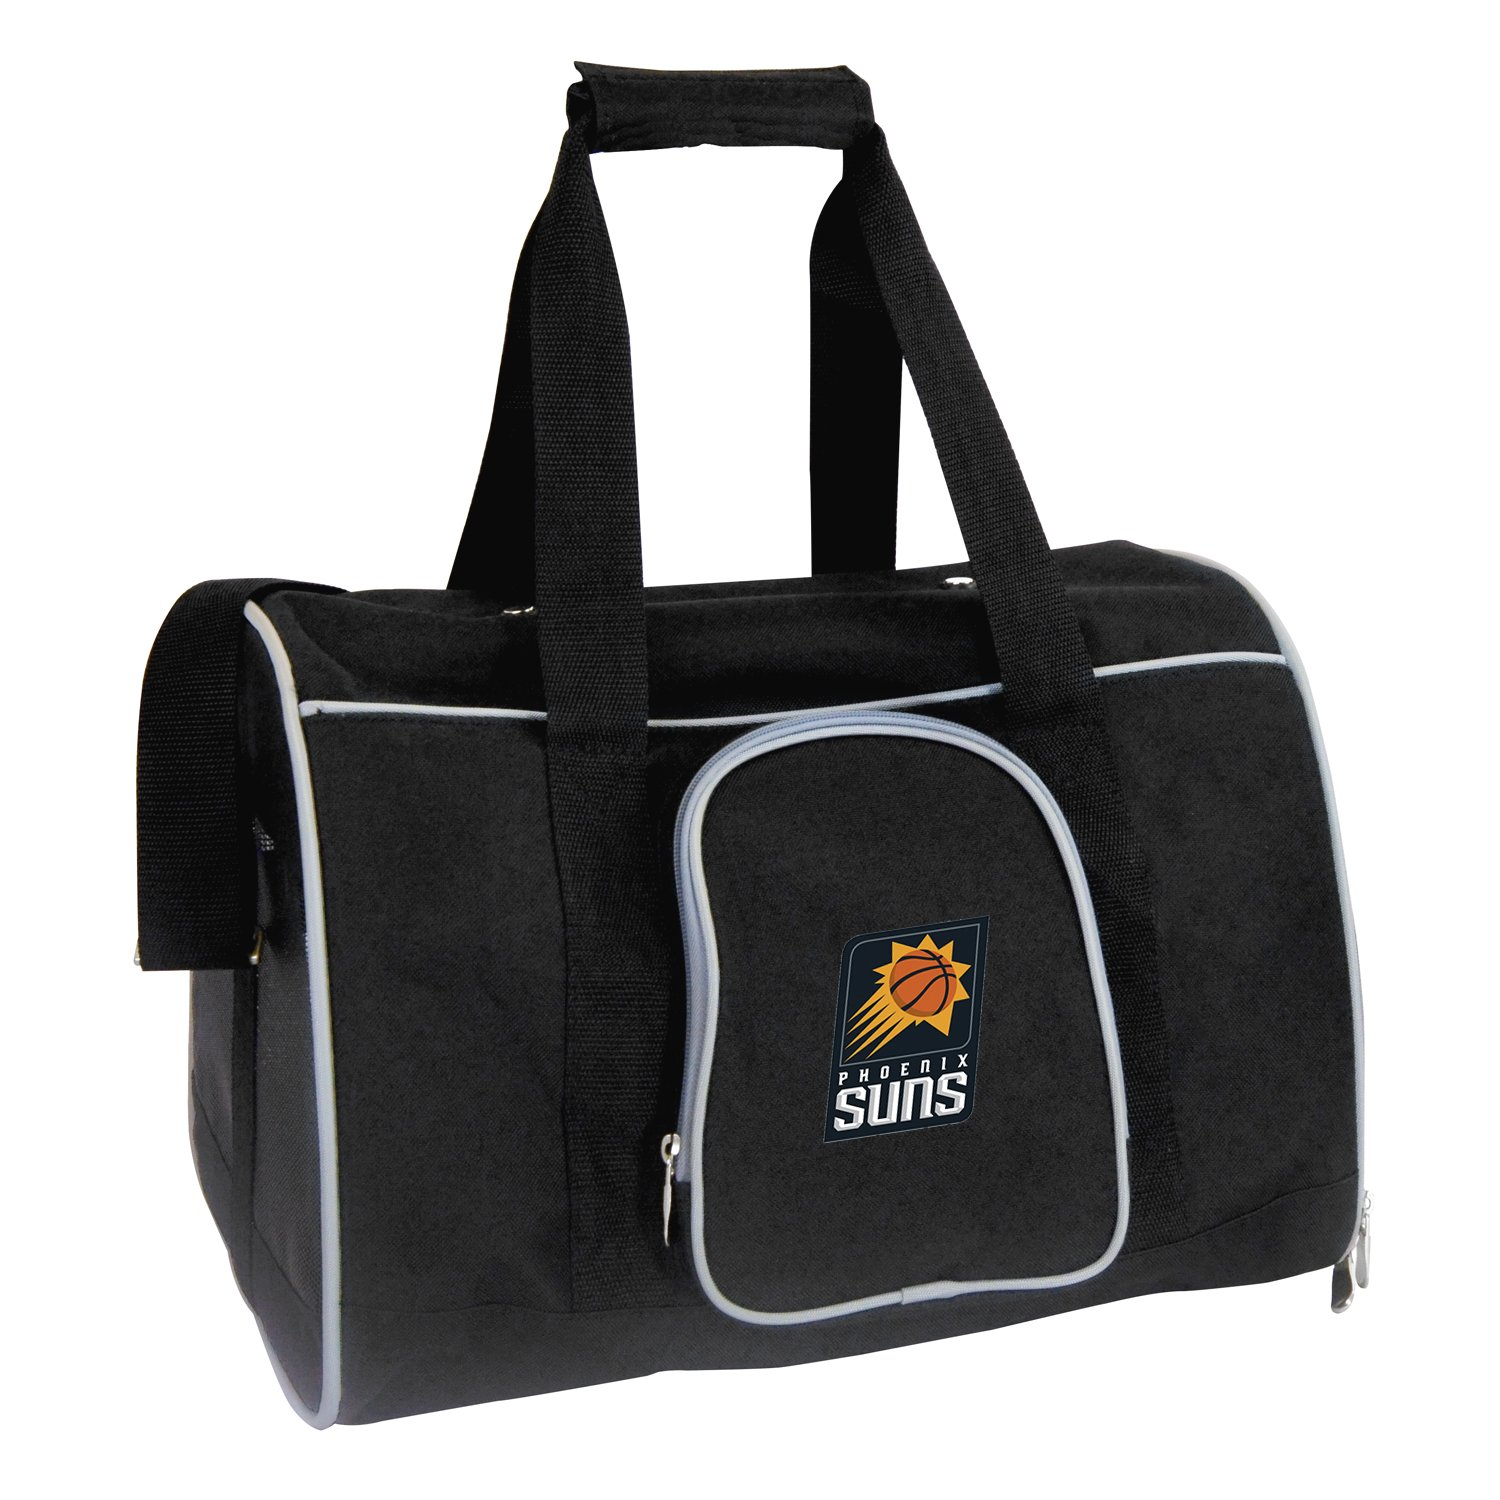 Denco NBA Phoenix Suns Premium Pet Carrier by Denco